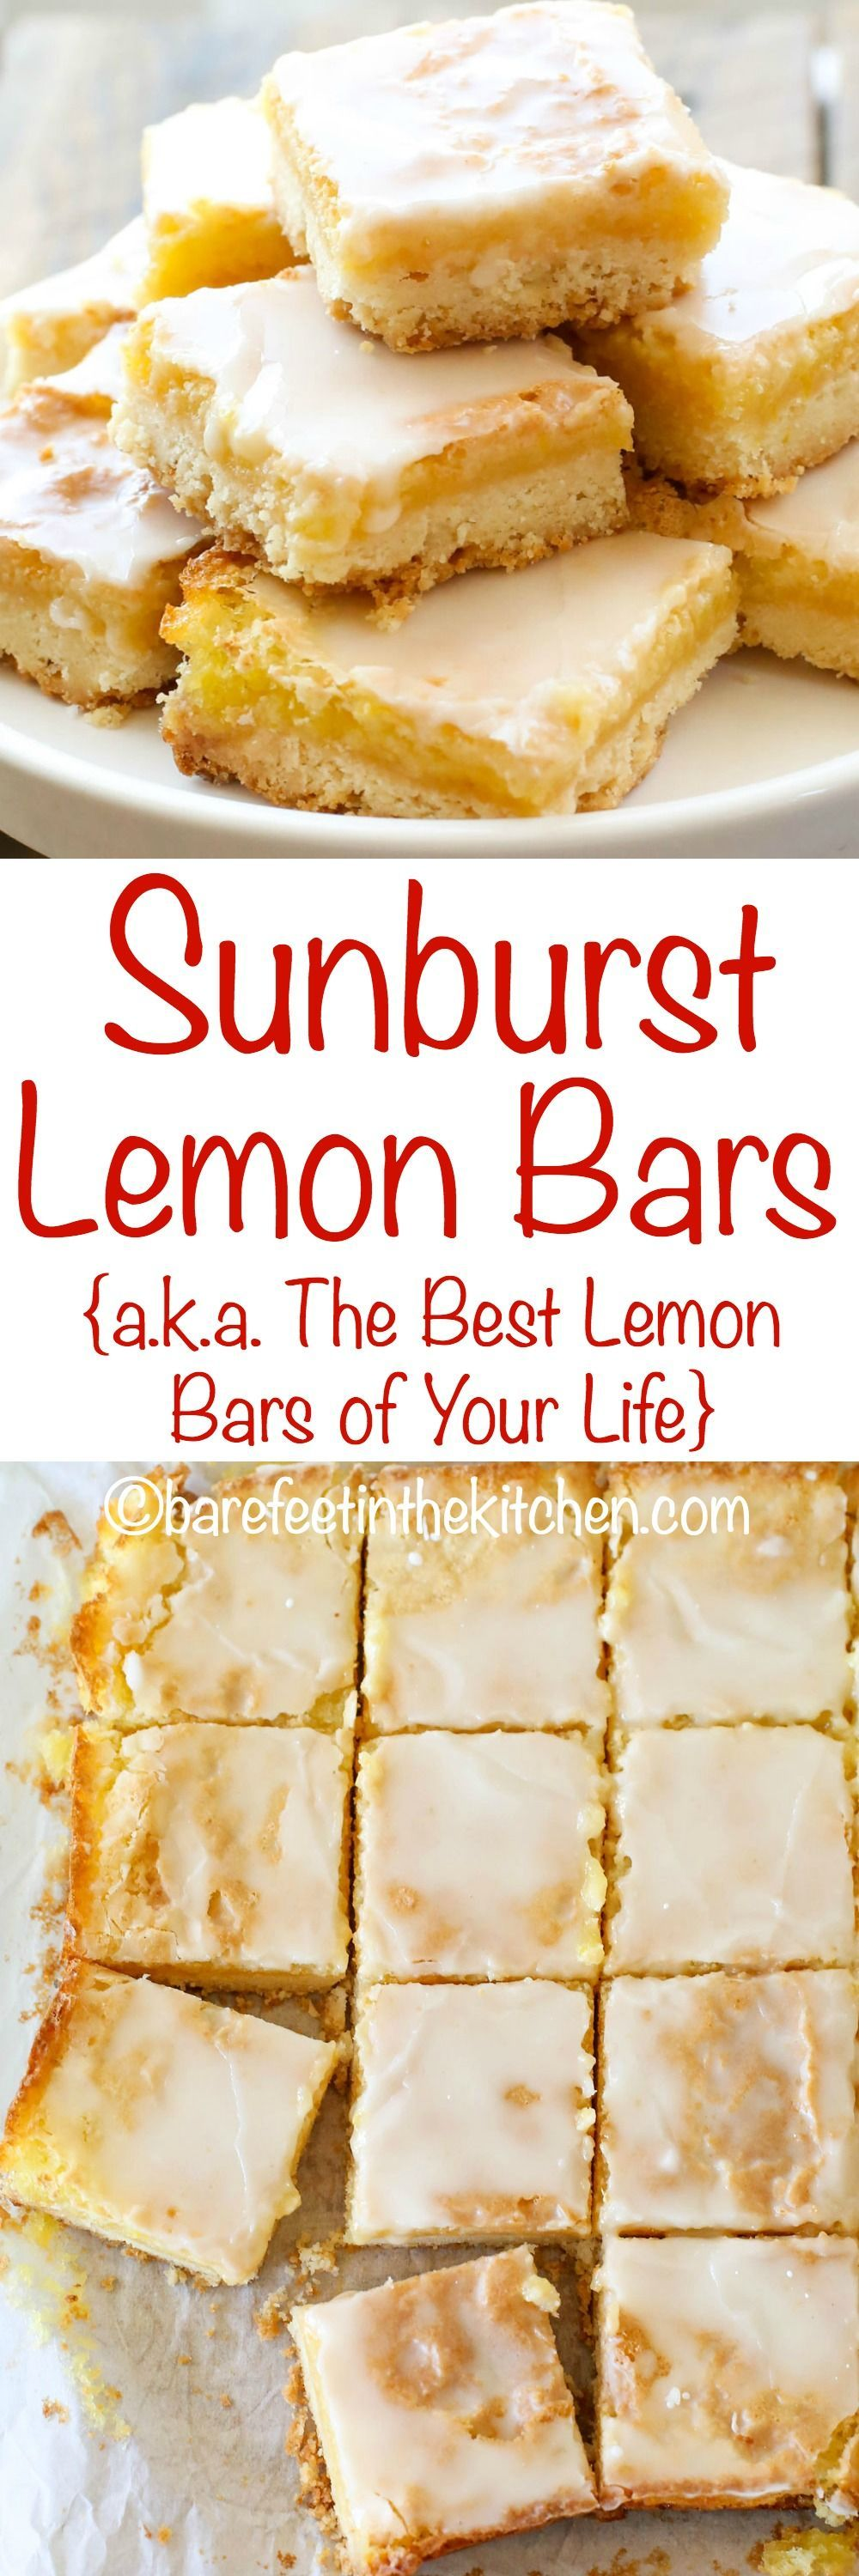 Lemon Bars are a lemon lover's dream come true! get the recipe at